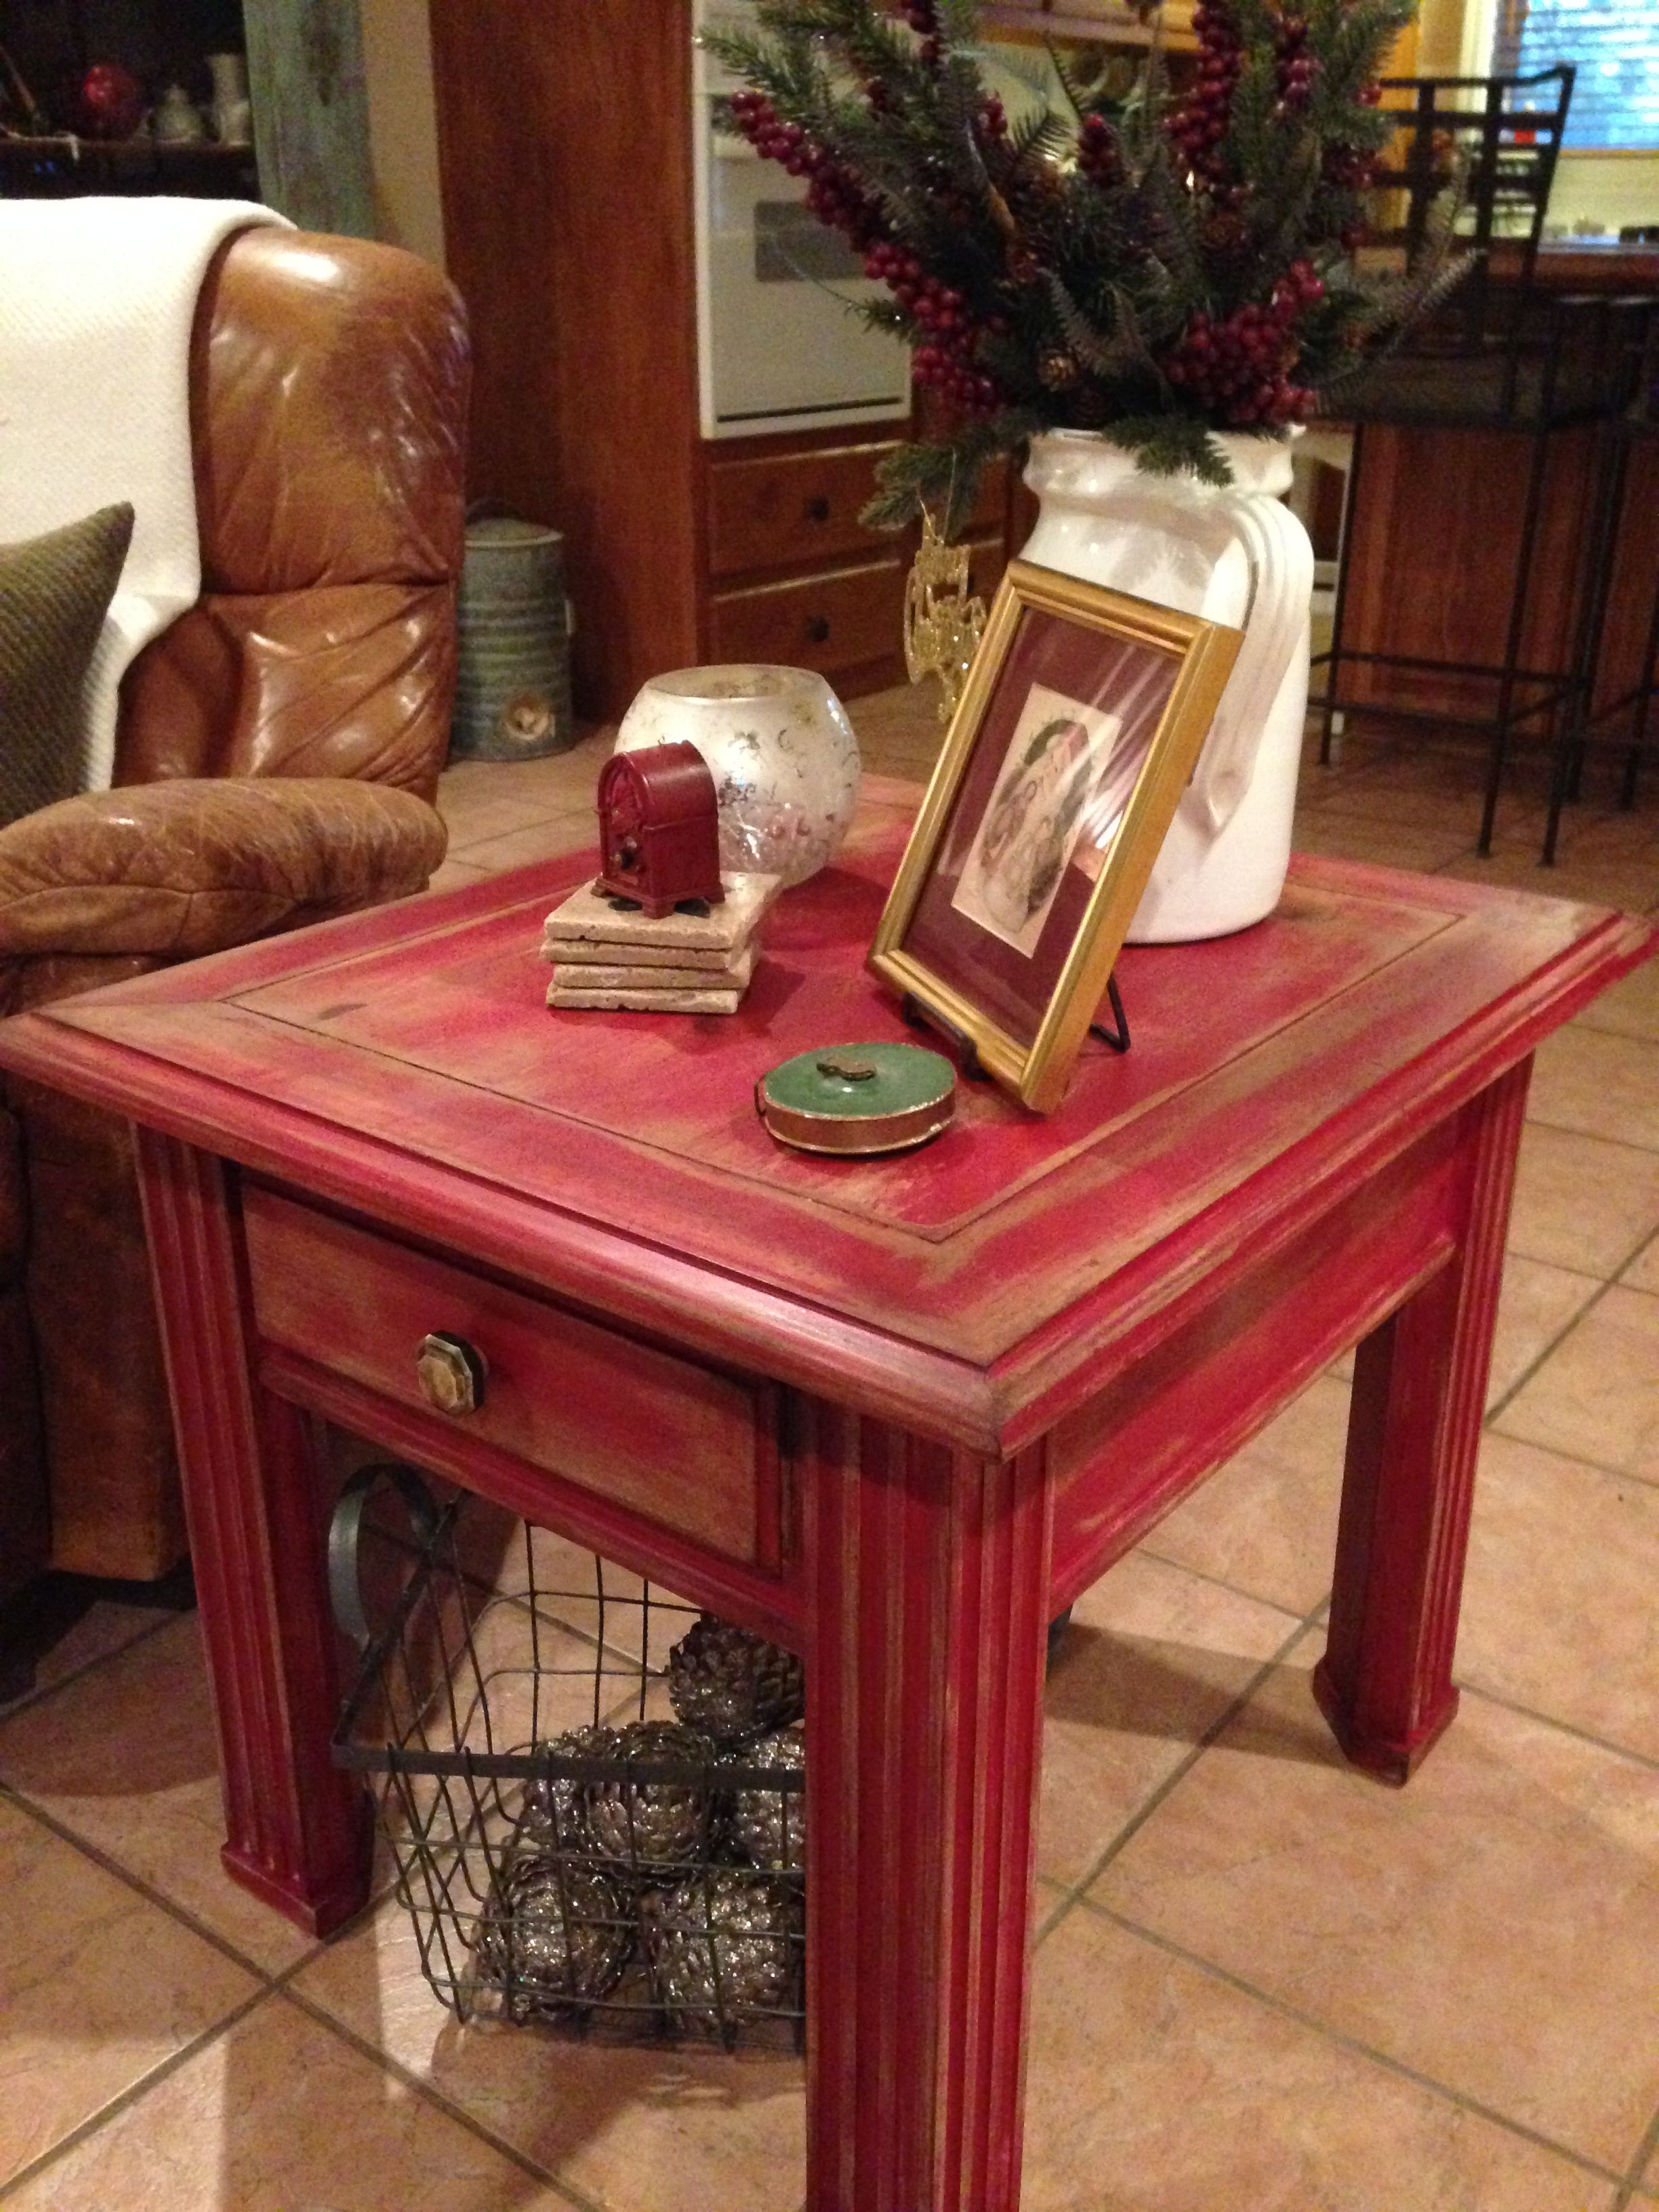 Christmas Tables Decorated End Table Painted In A Barn Red And Decorated For